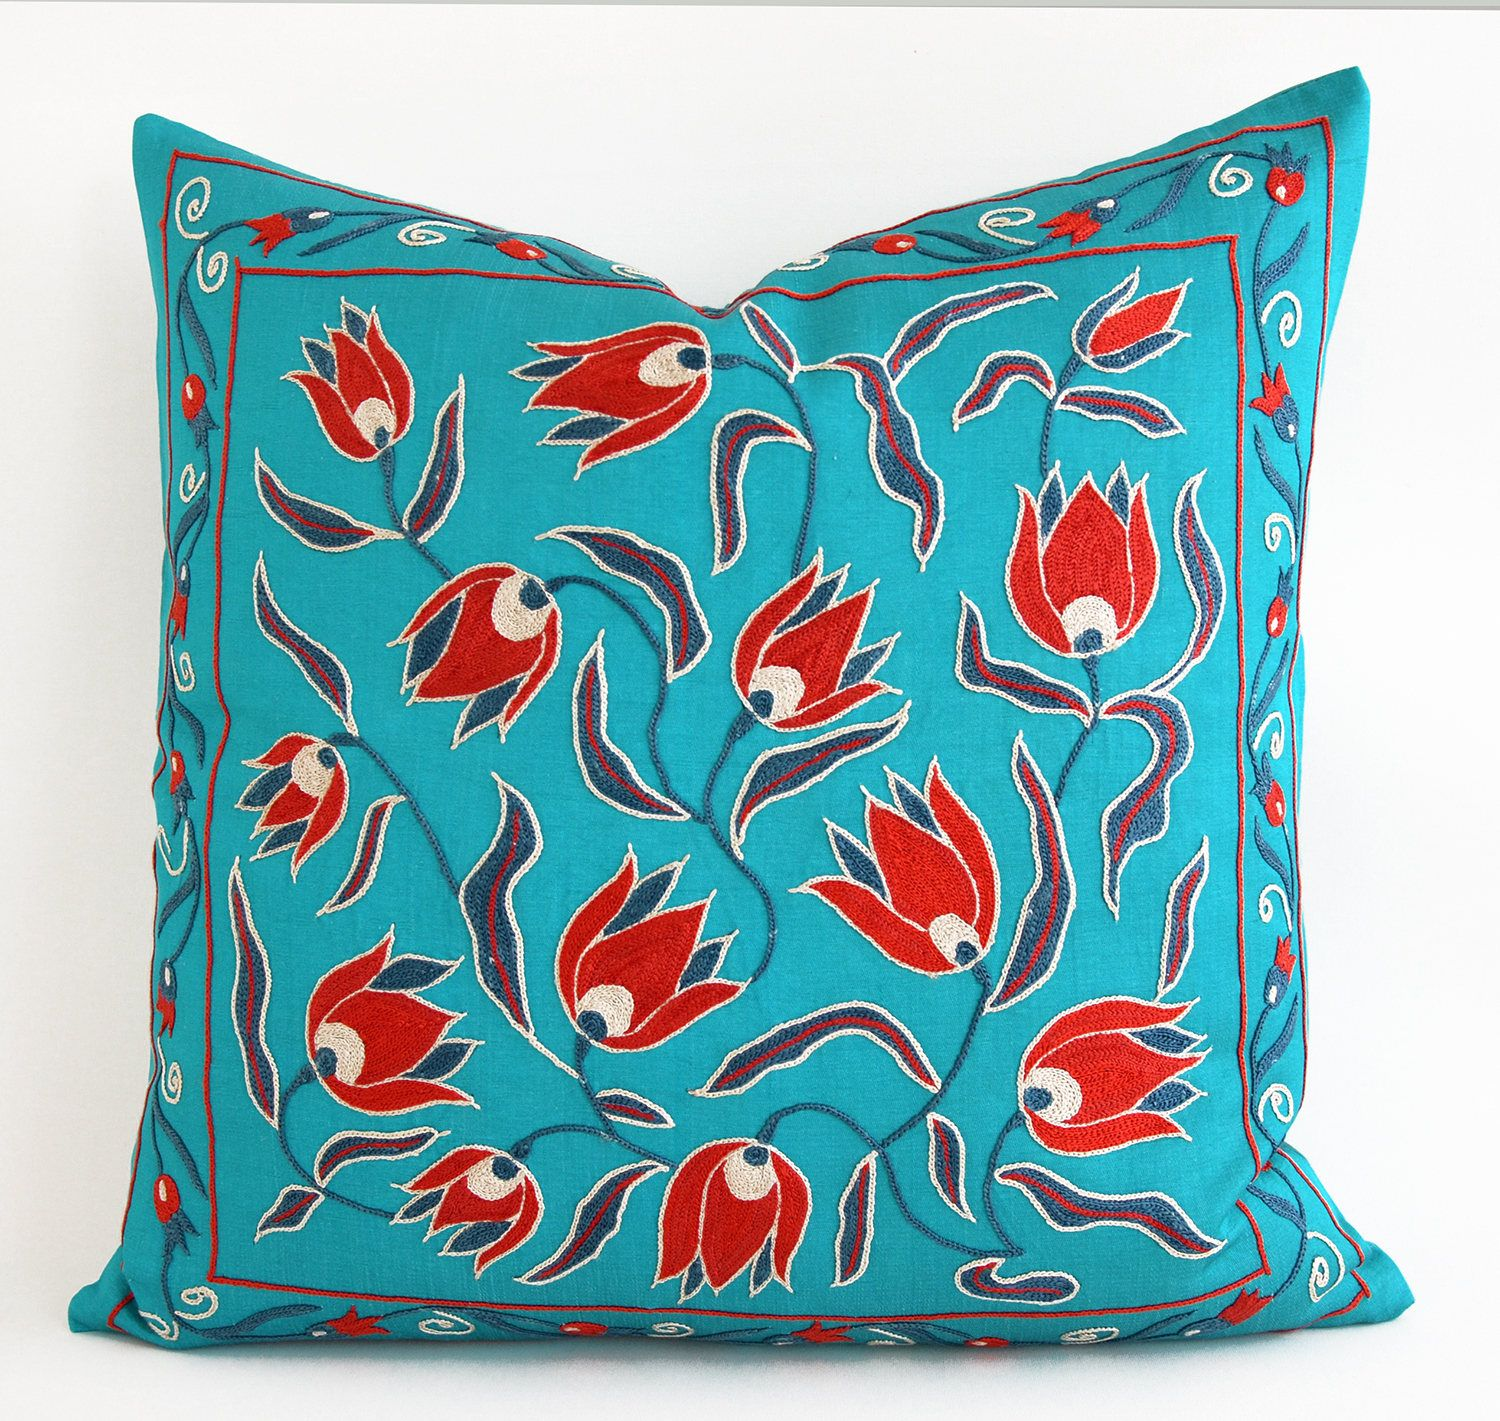 Etsy Throw Pillows Green Red Turquoise Vintage Suzani Pillow Embroidered Decorative